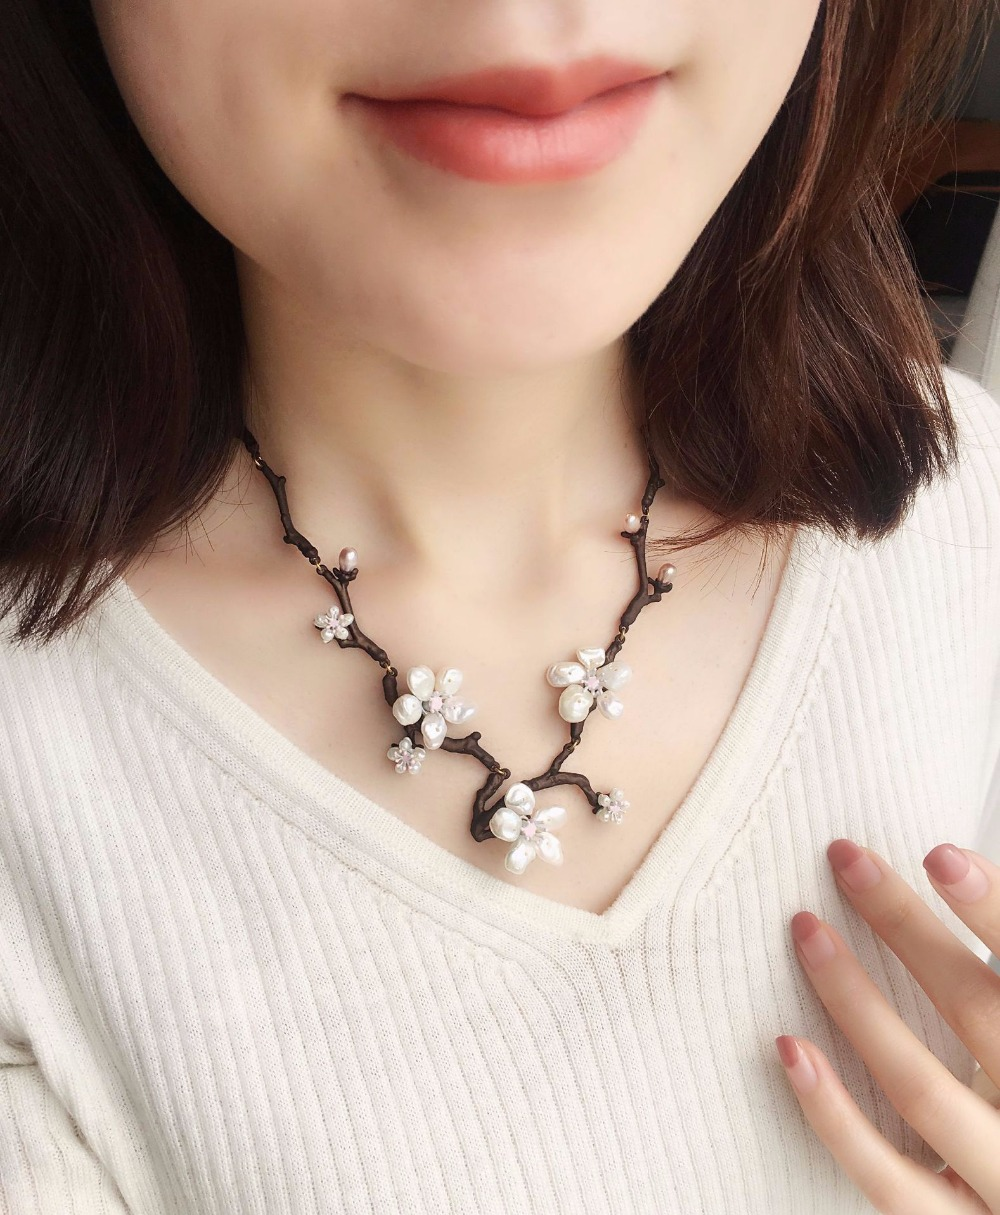 High end independent designers Cherry blossoms bloom necklace